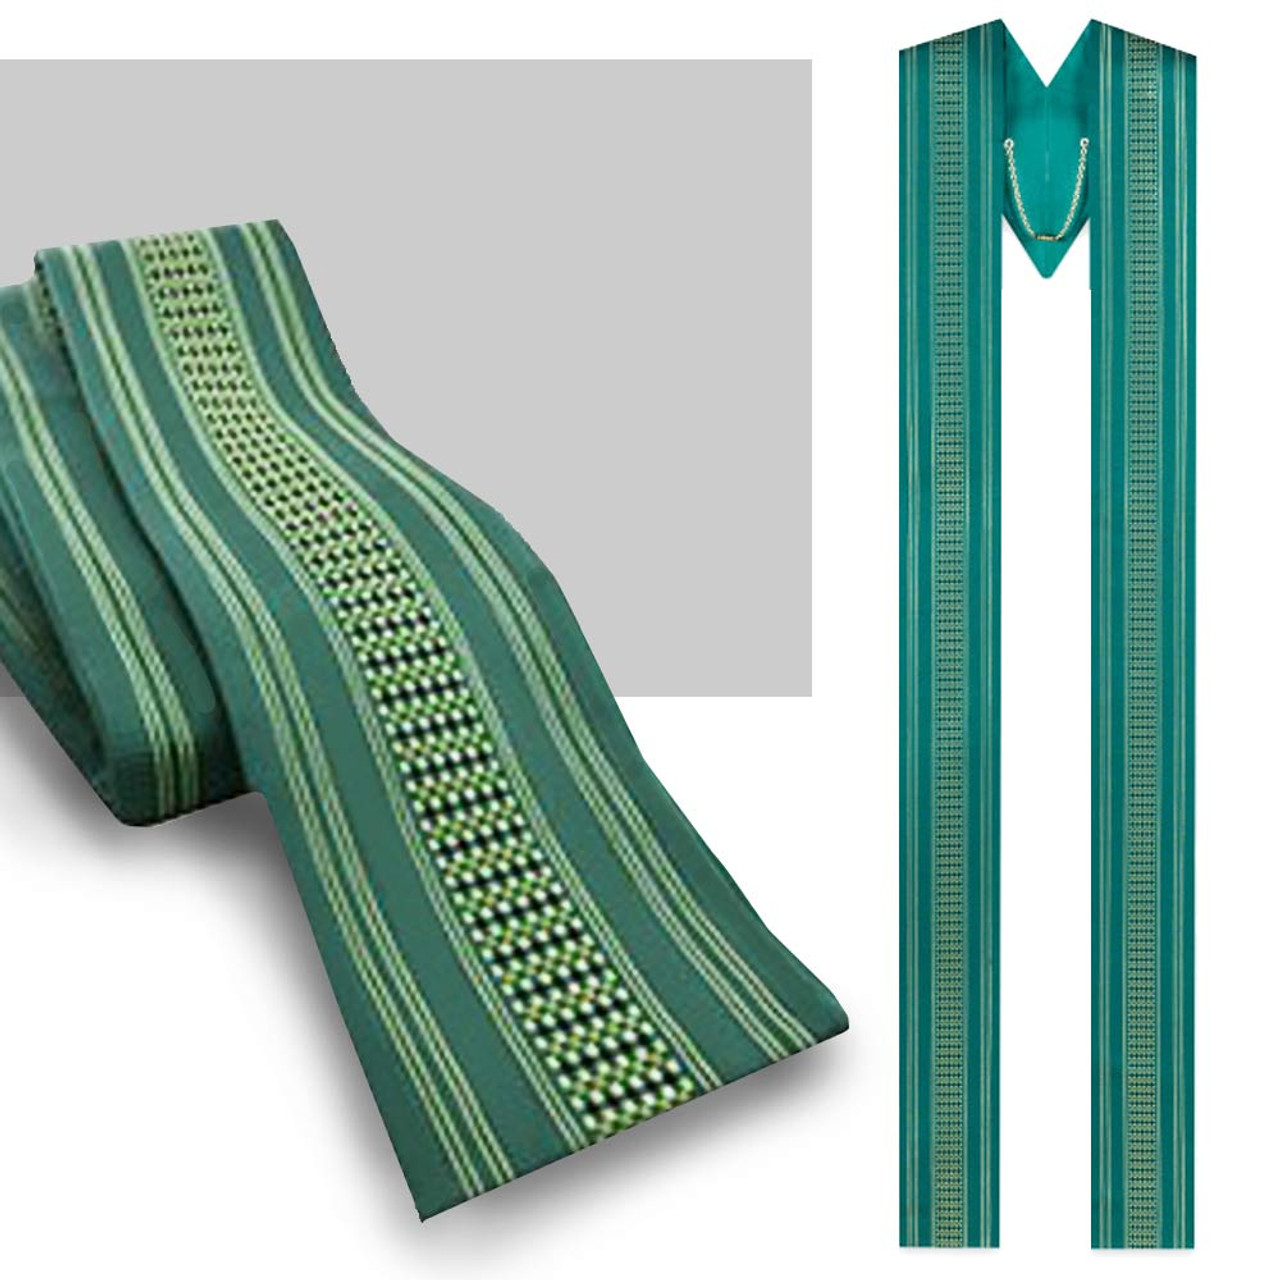 3110 Green Ornata Overlay Stole - 63 x 4.75 Inches